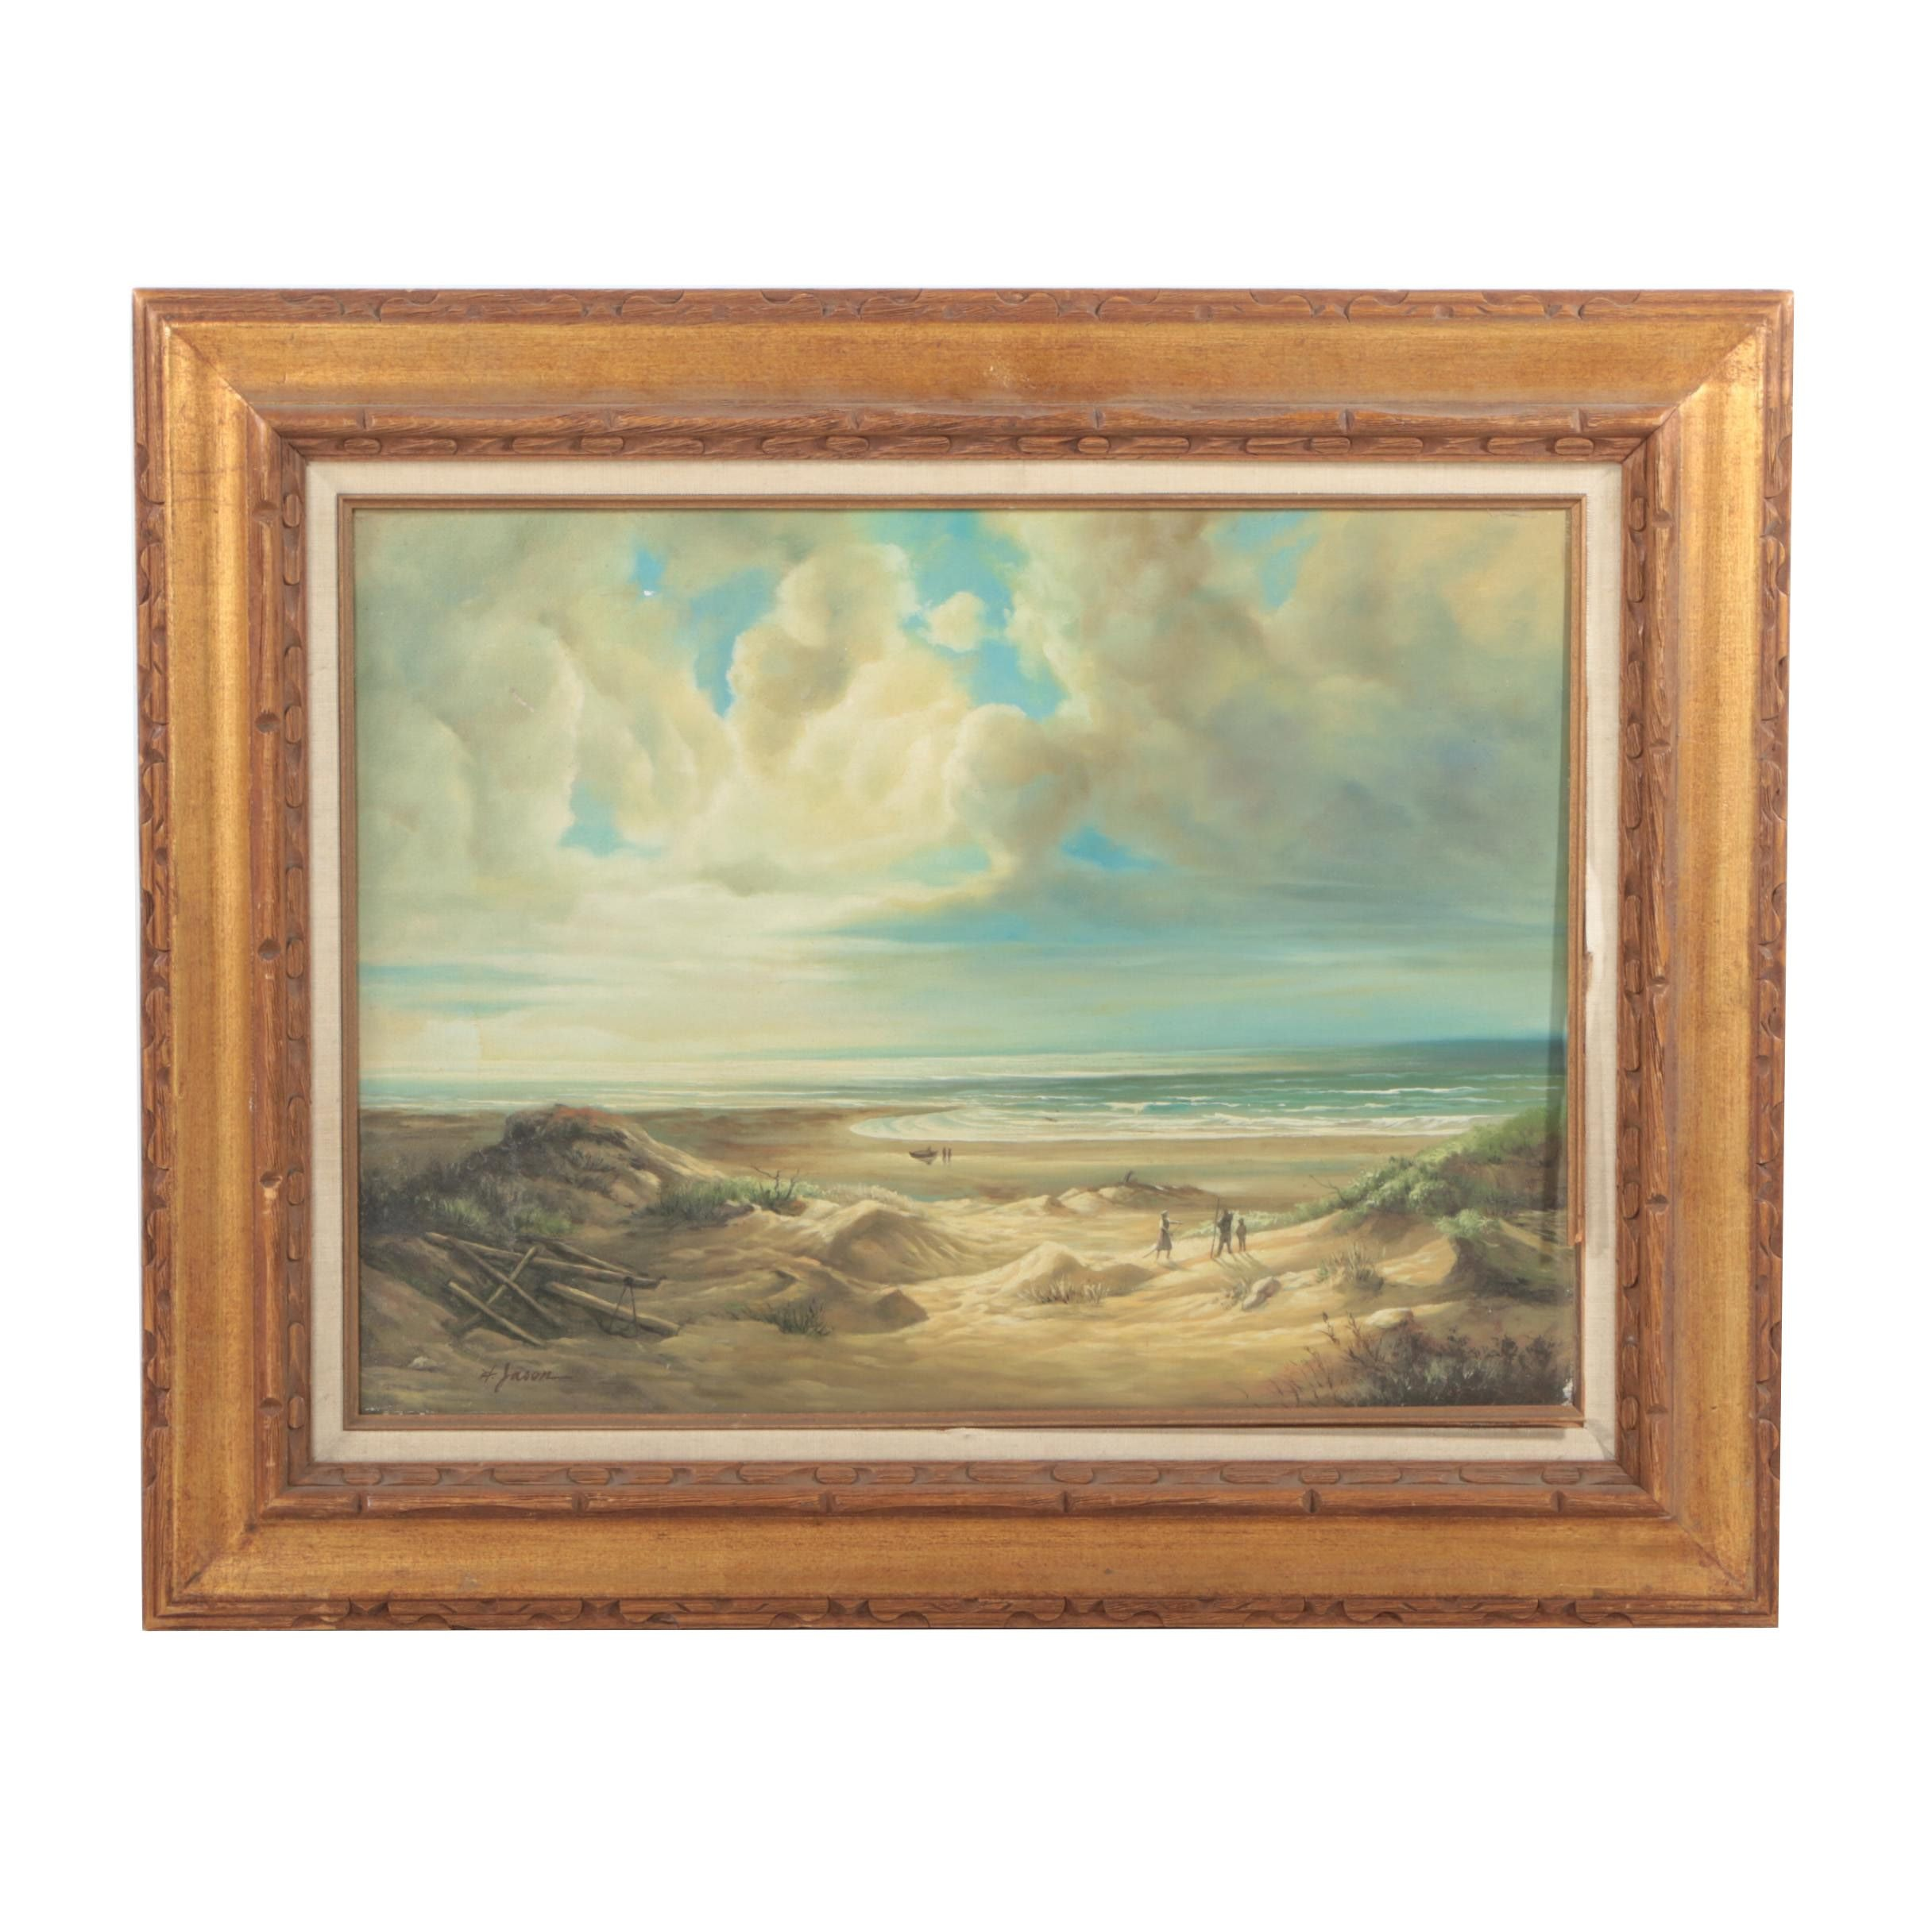 H. Jason Oil on Canvas Landscape of a Beach